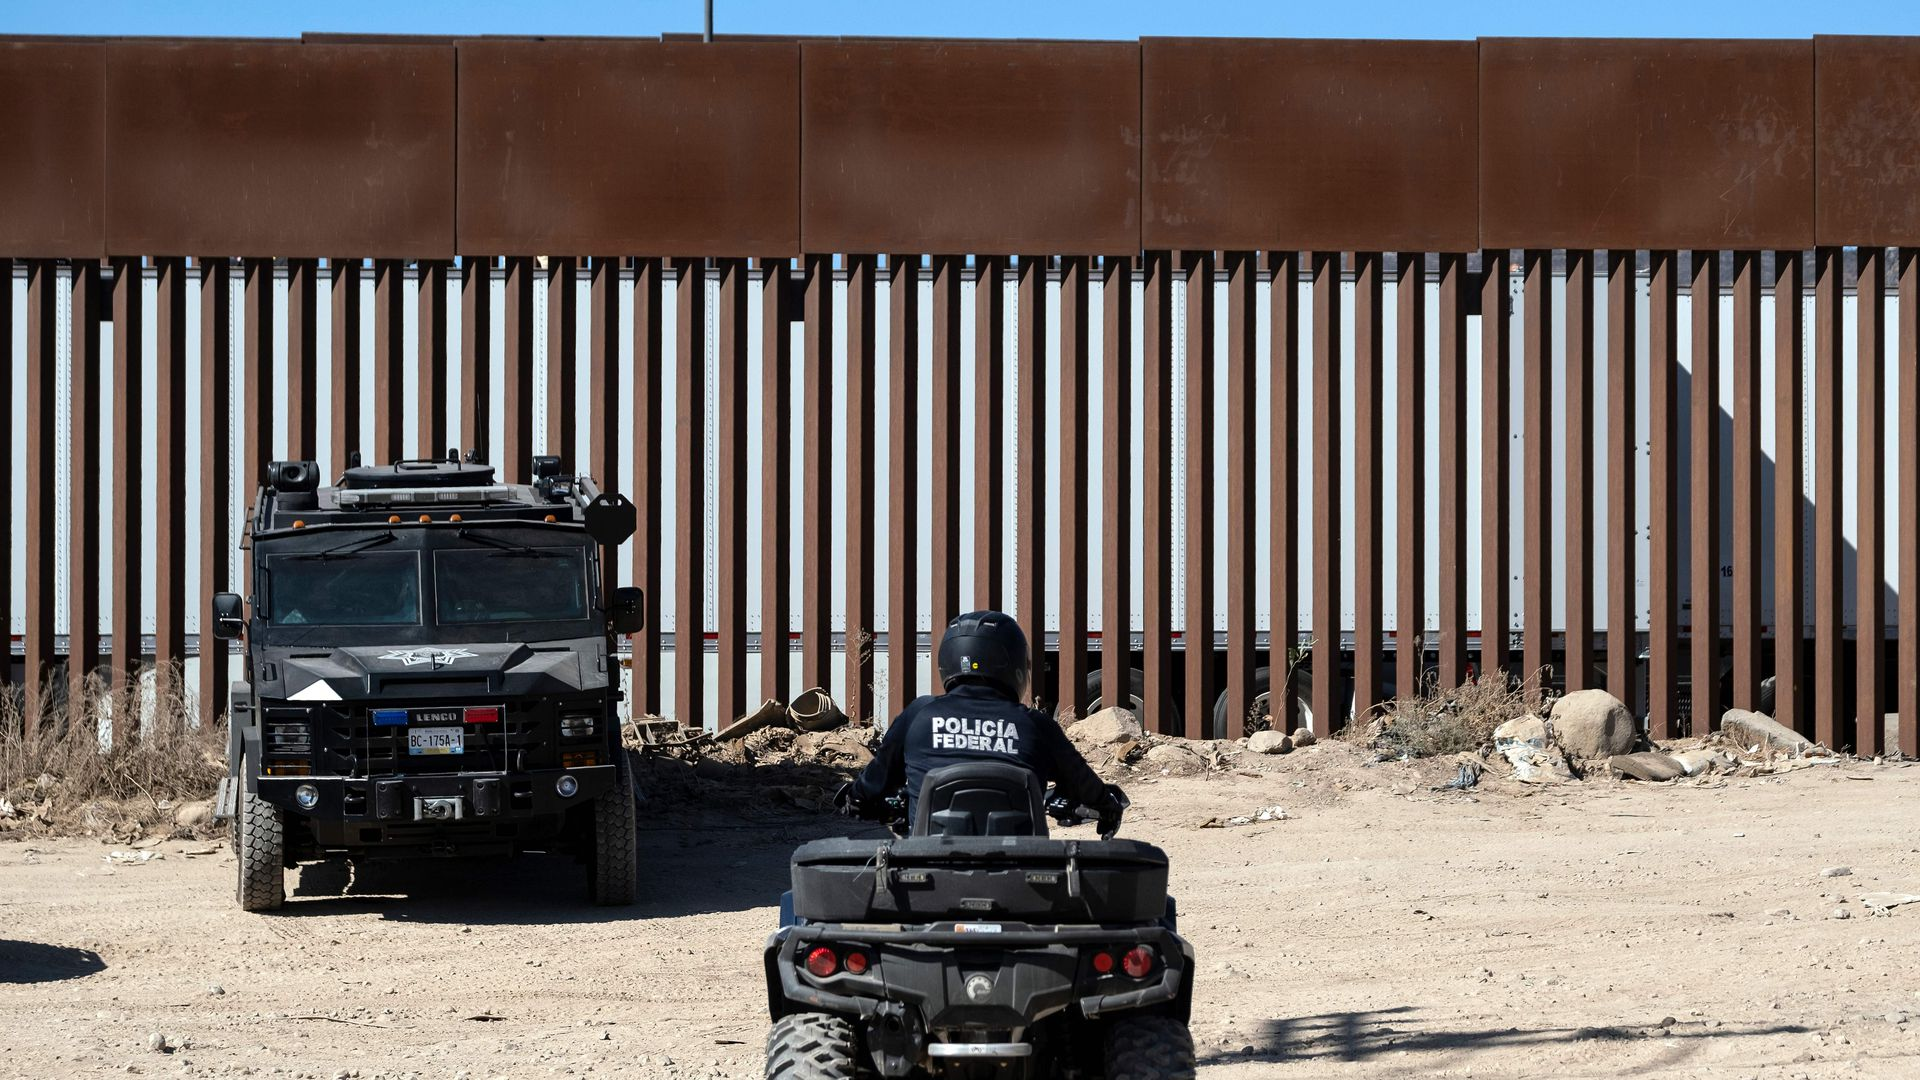 In this image, police sit in cars next to the border wall.